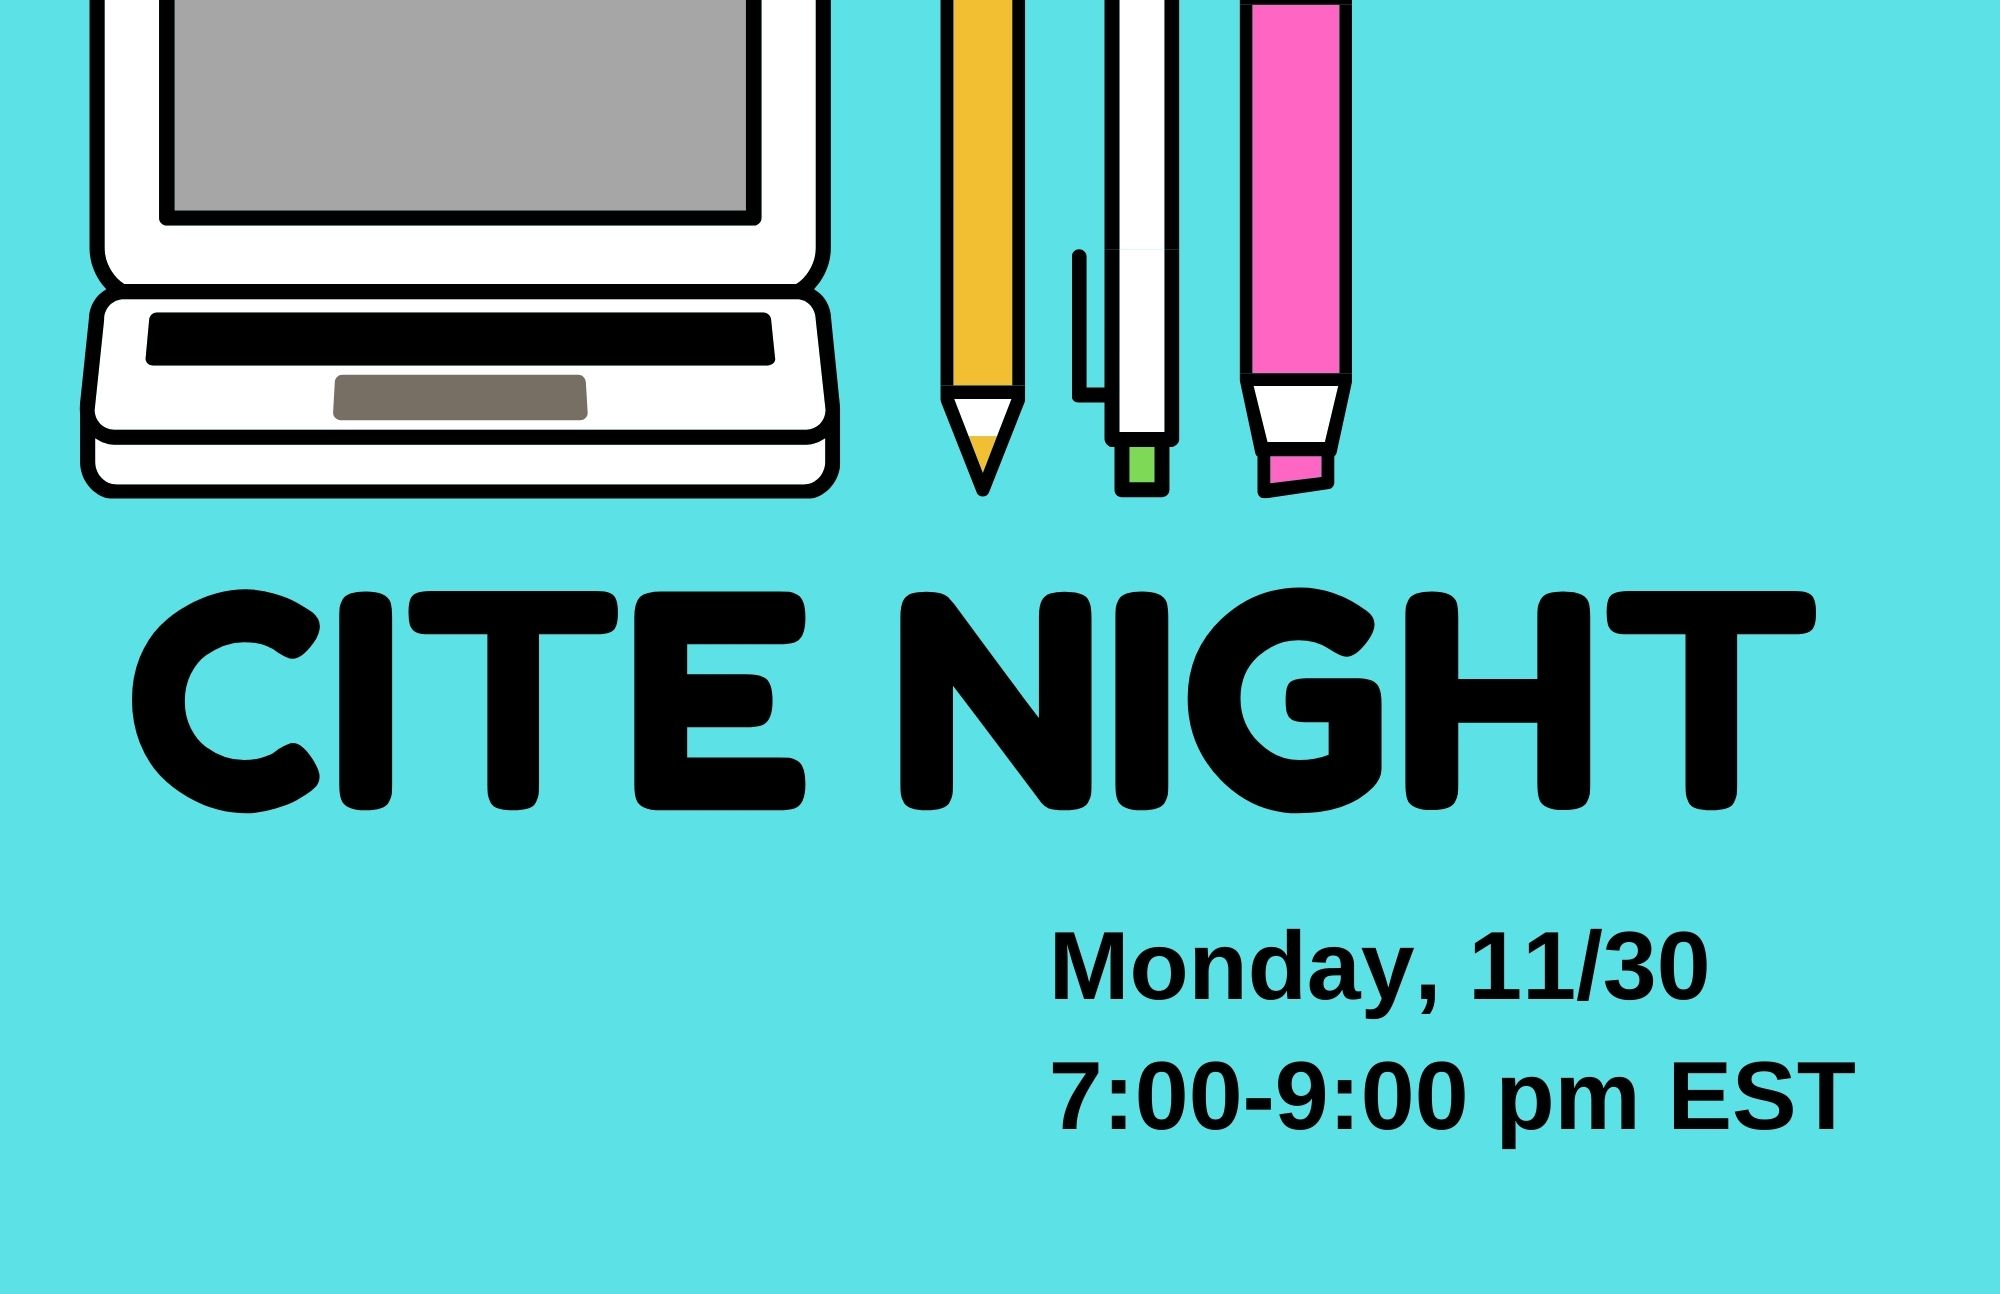 Cite Night: Citation Help with Peer Research Mentors